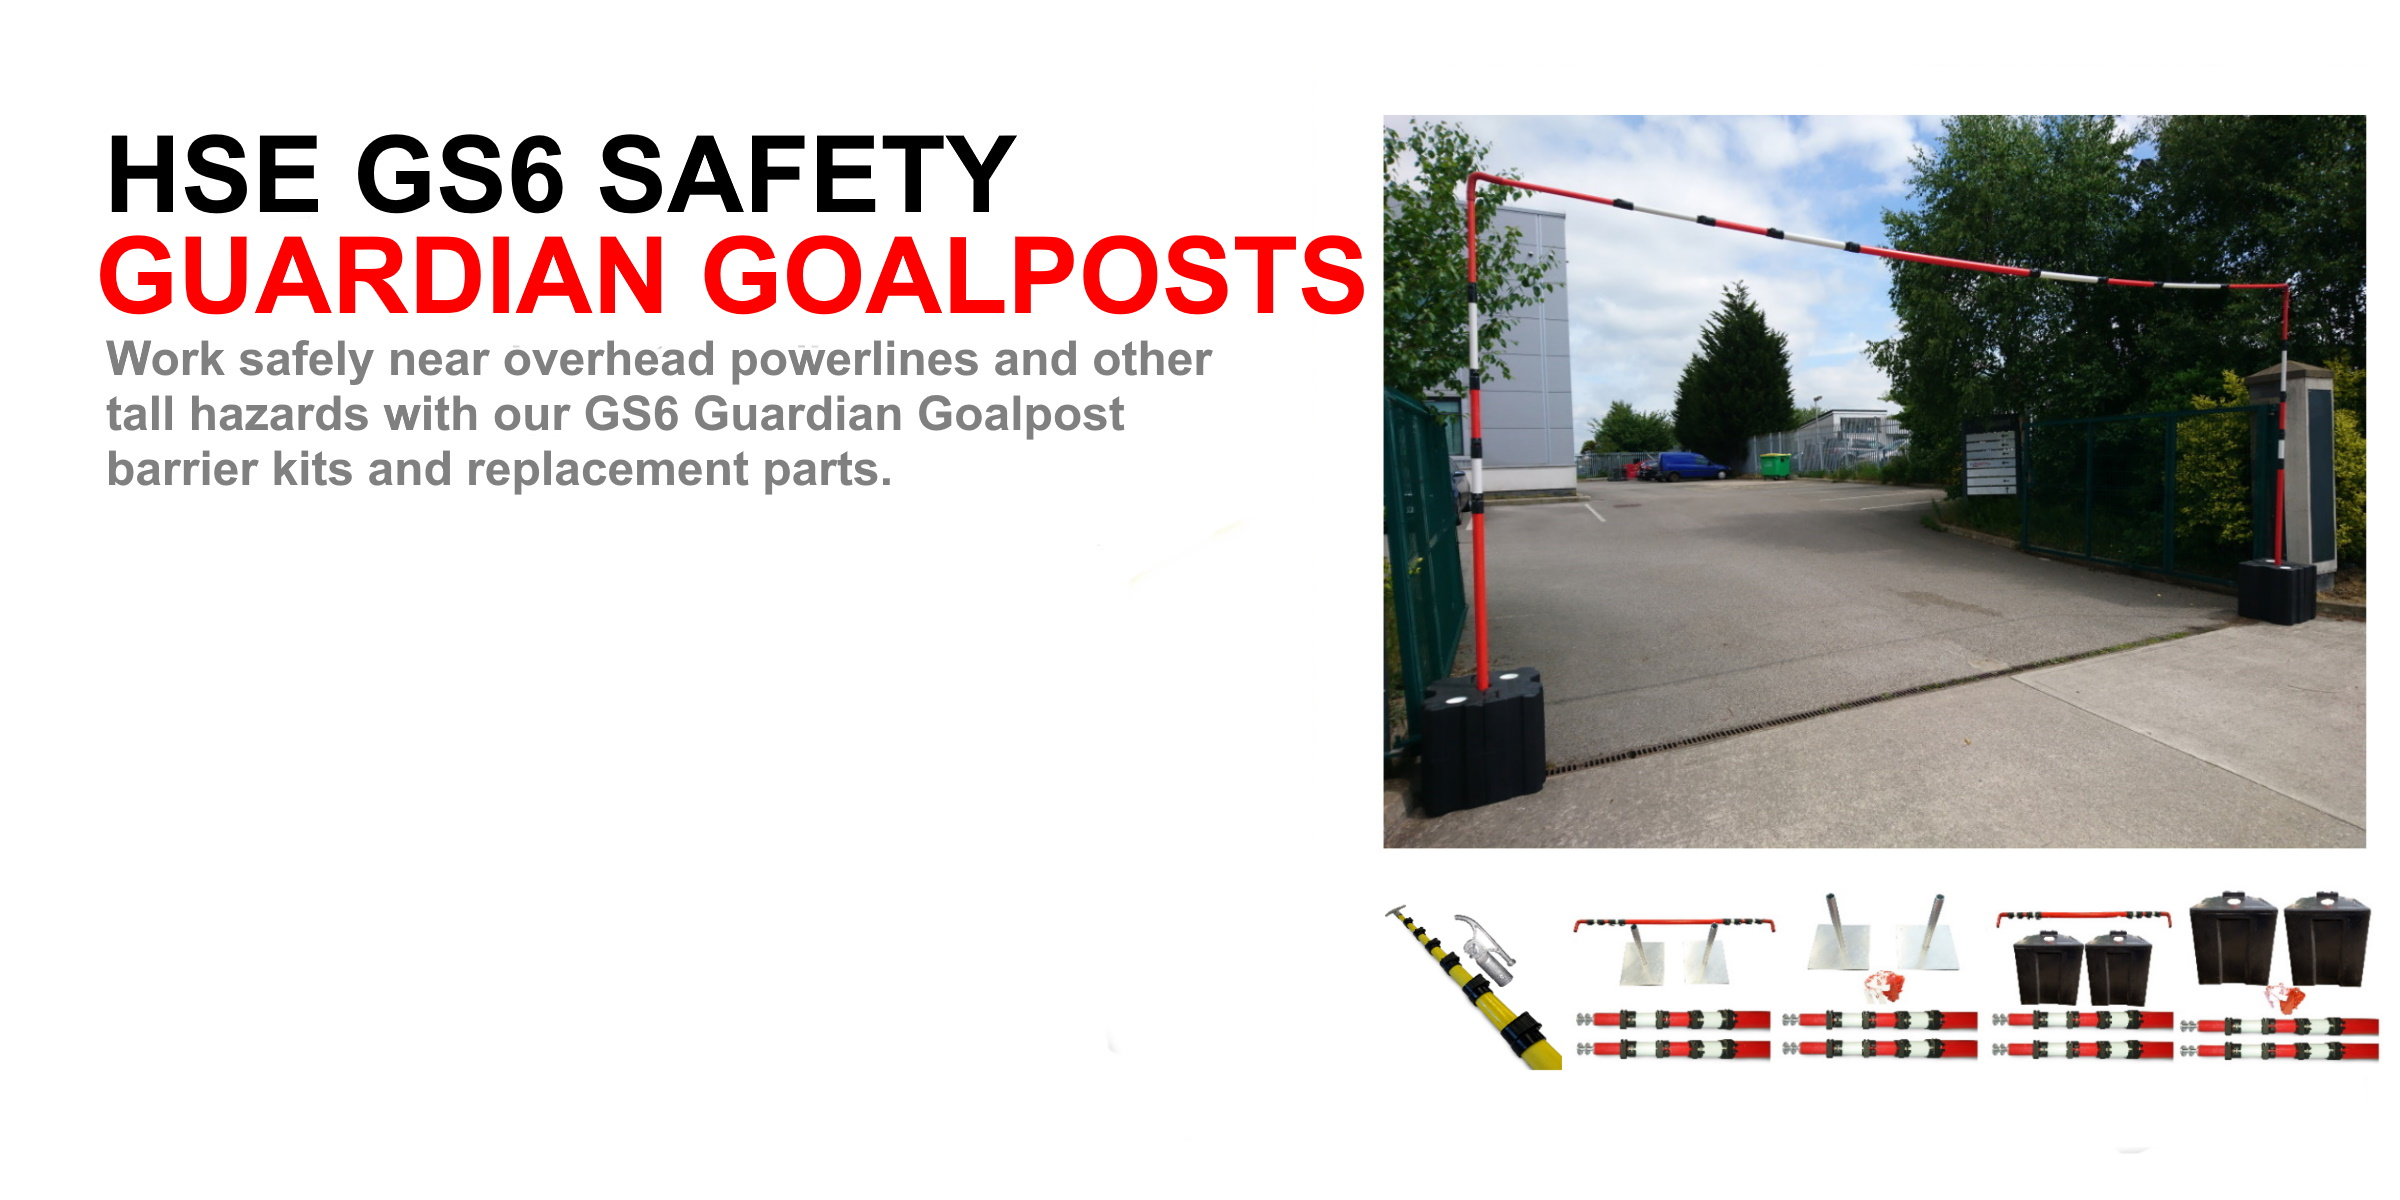 HSE GS6 guardian goalpost barriers